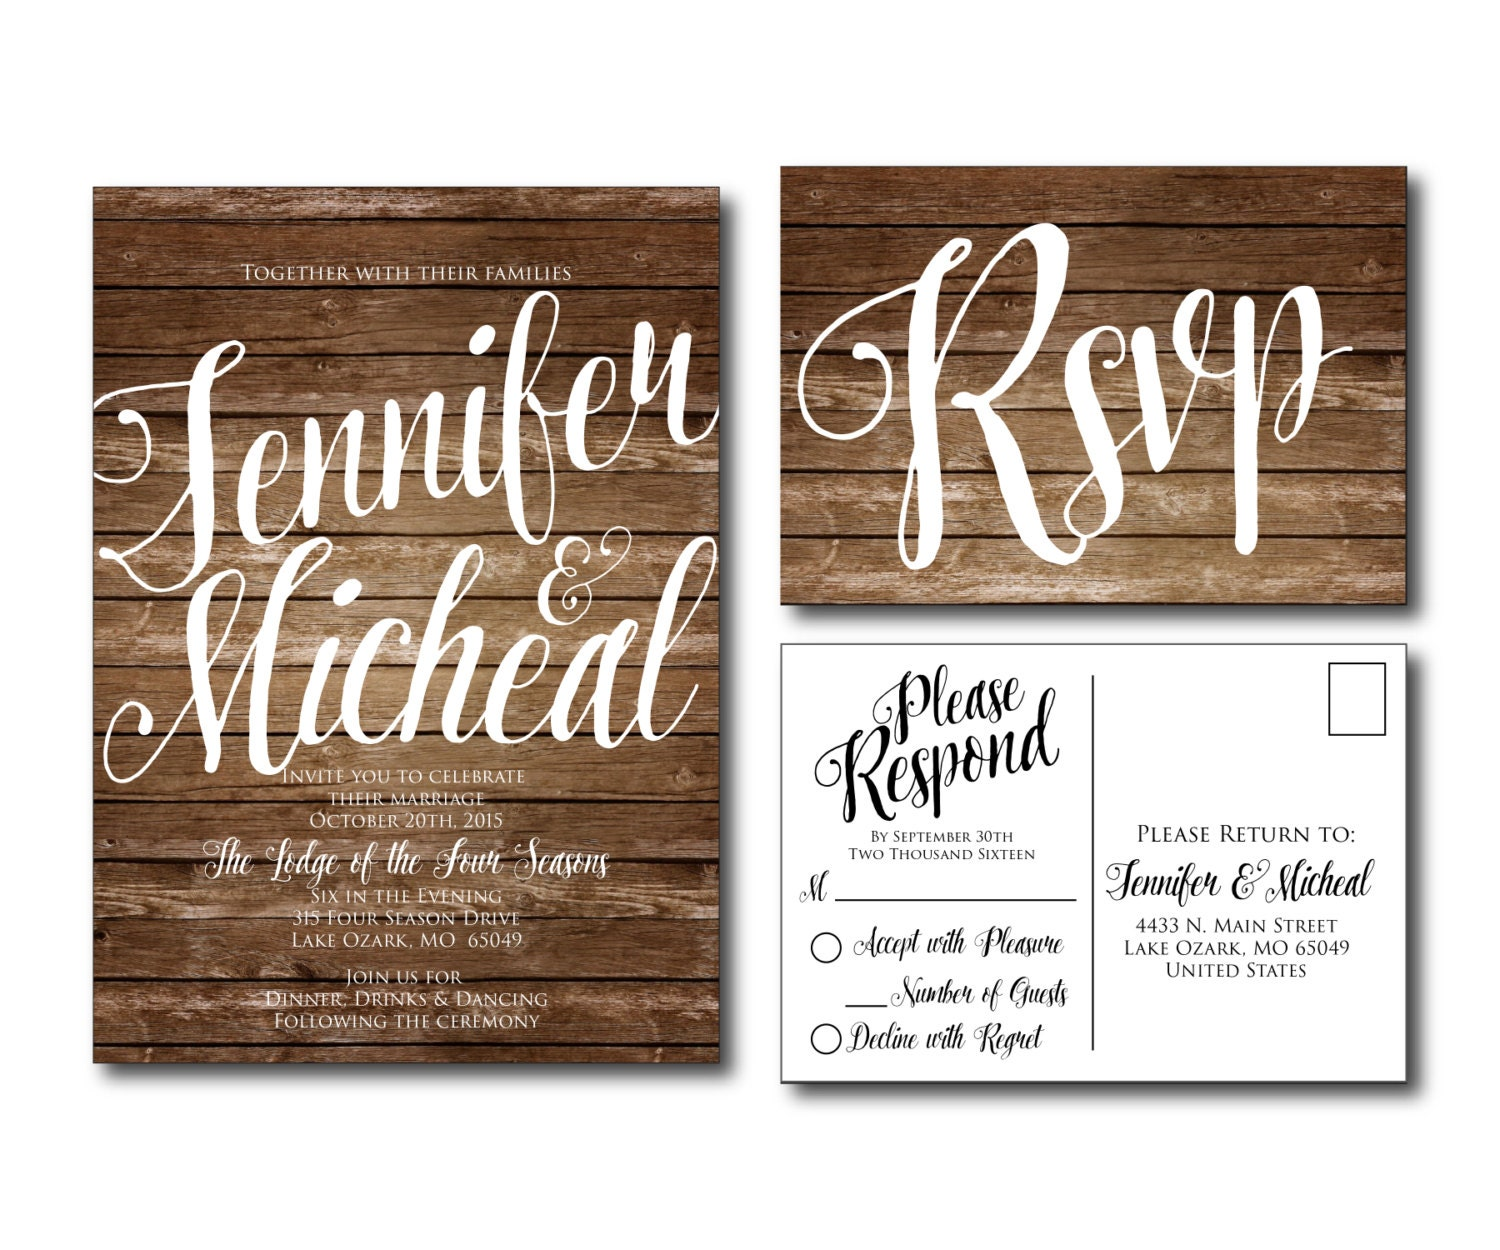 Wedding Invitation Postcard: Rustic Wedding Invitation Country Chic Fall Wedding